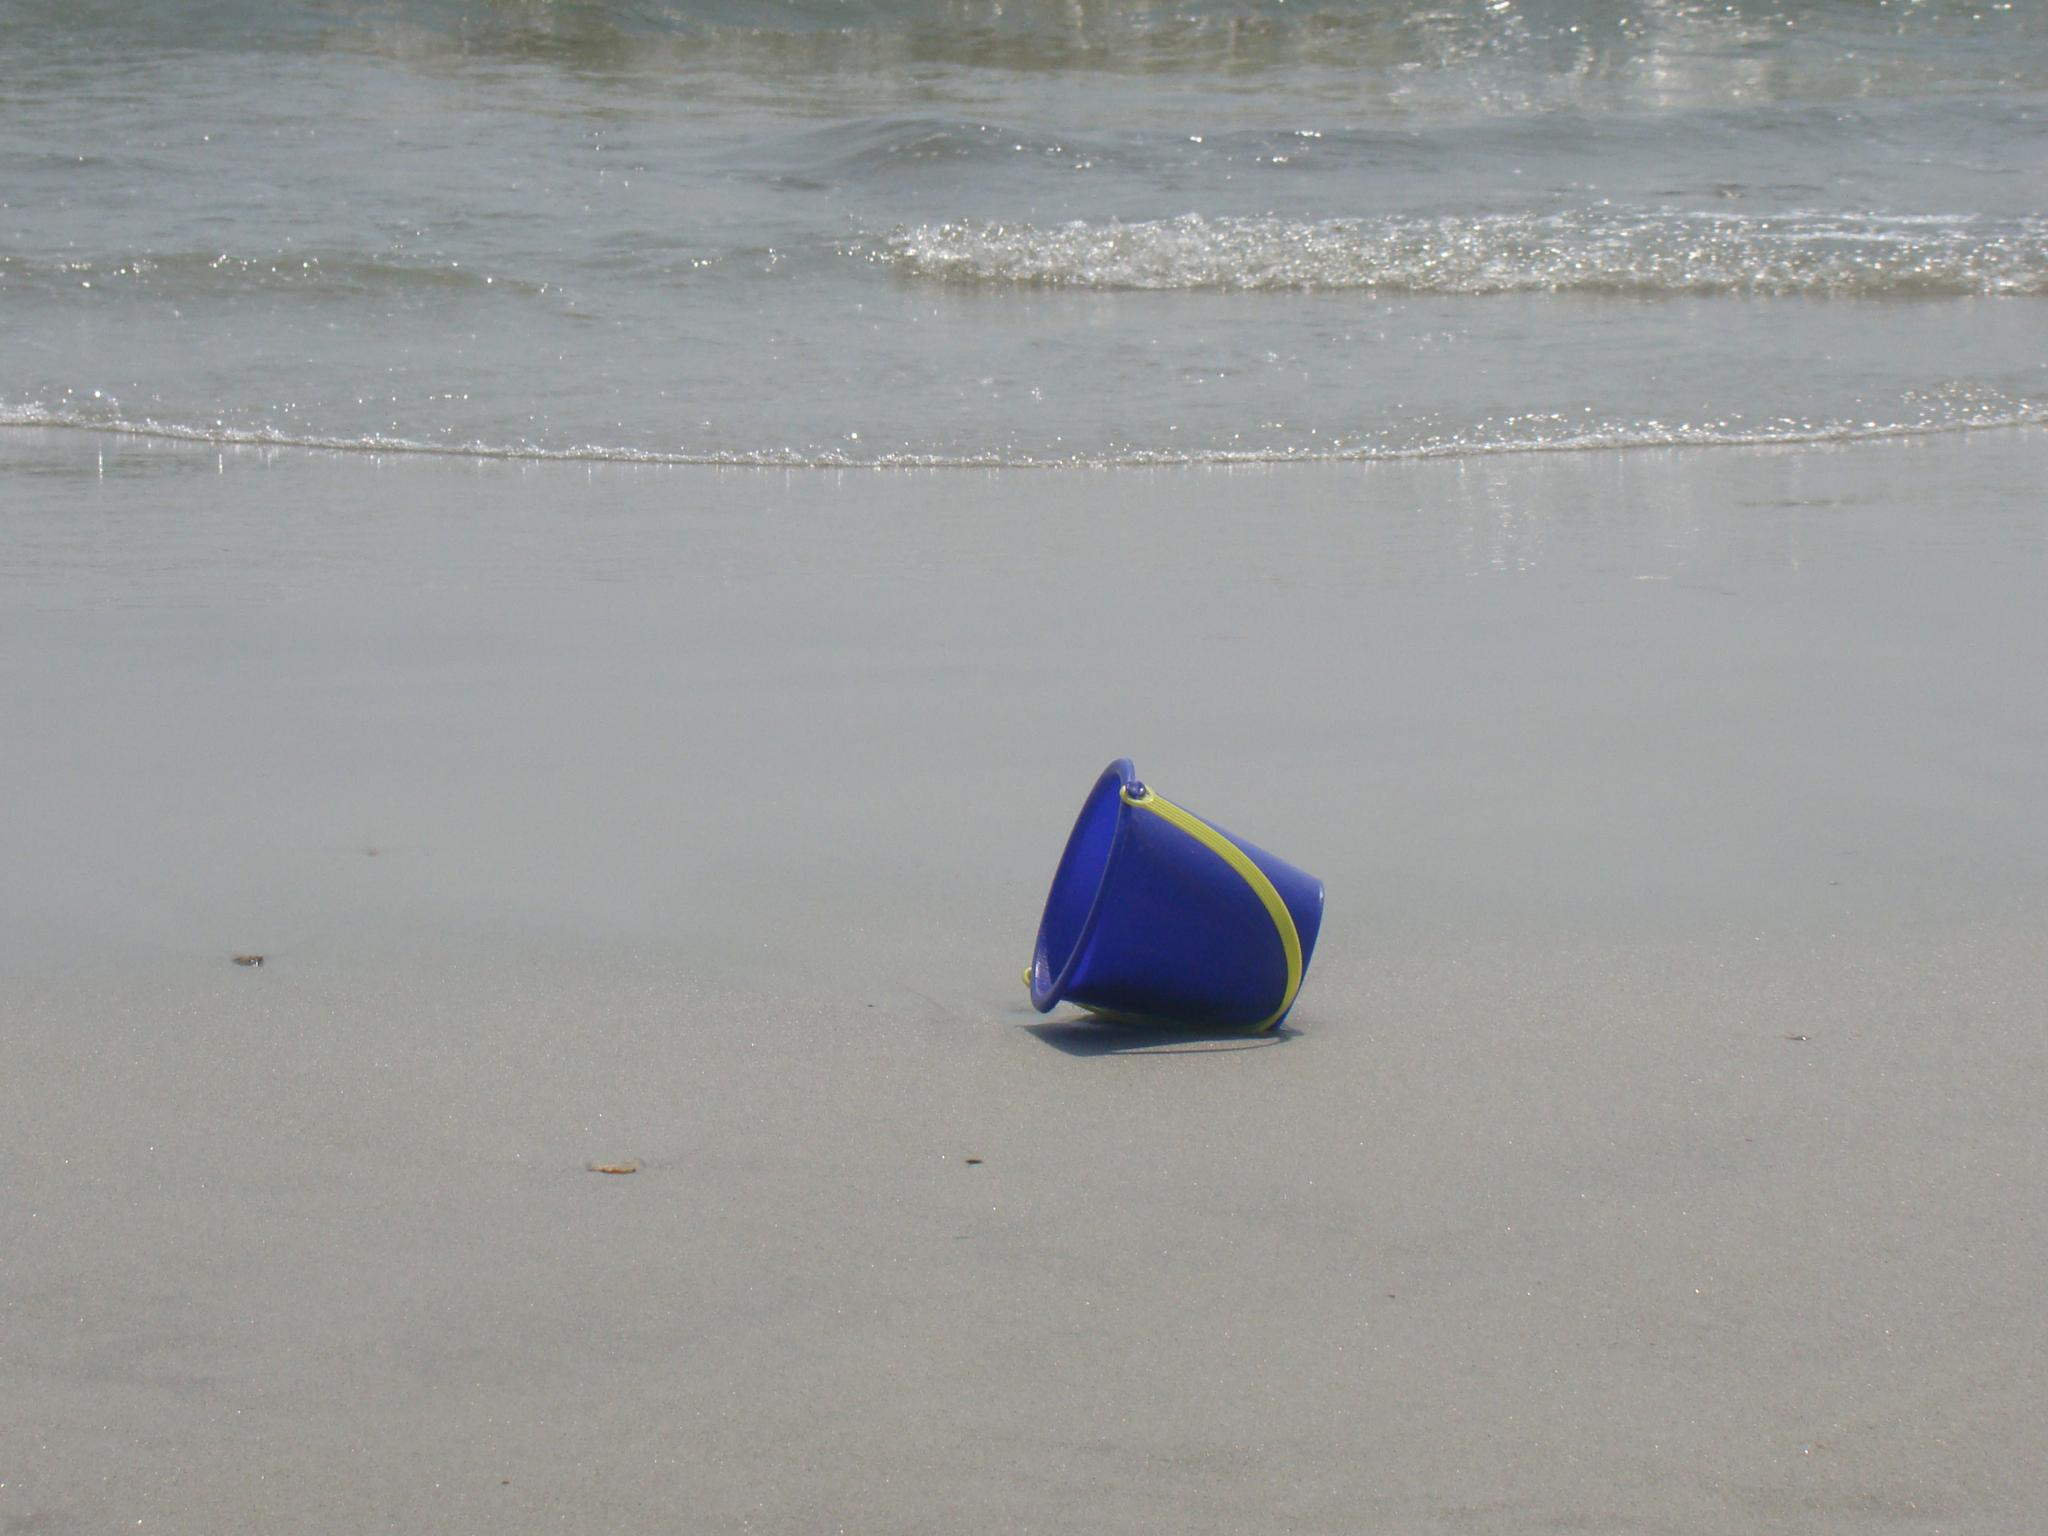 The Blue Bucket by Catherine Carver